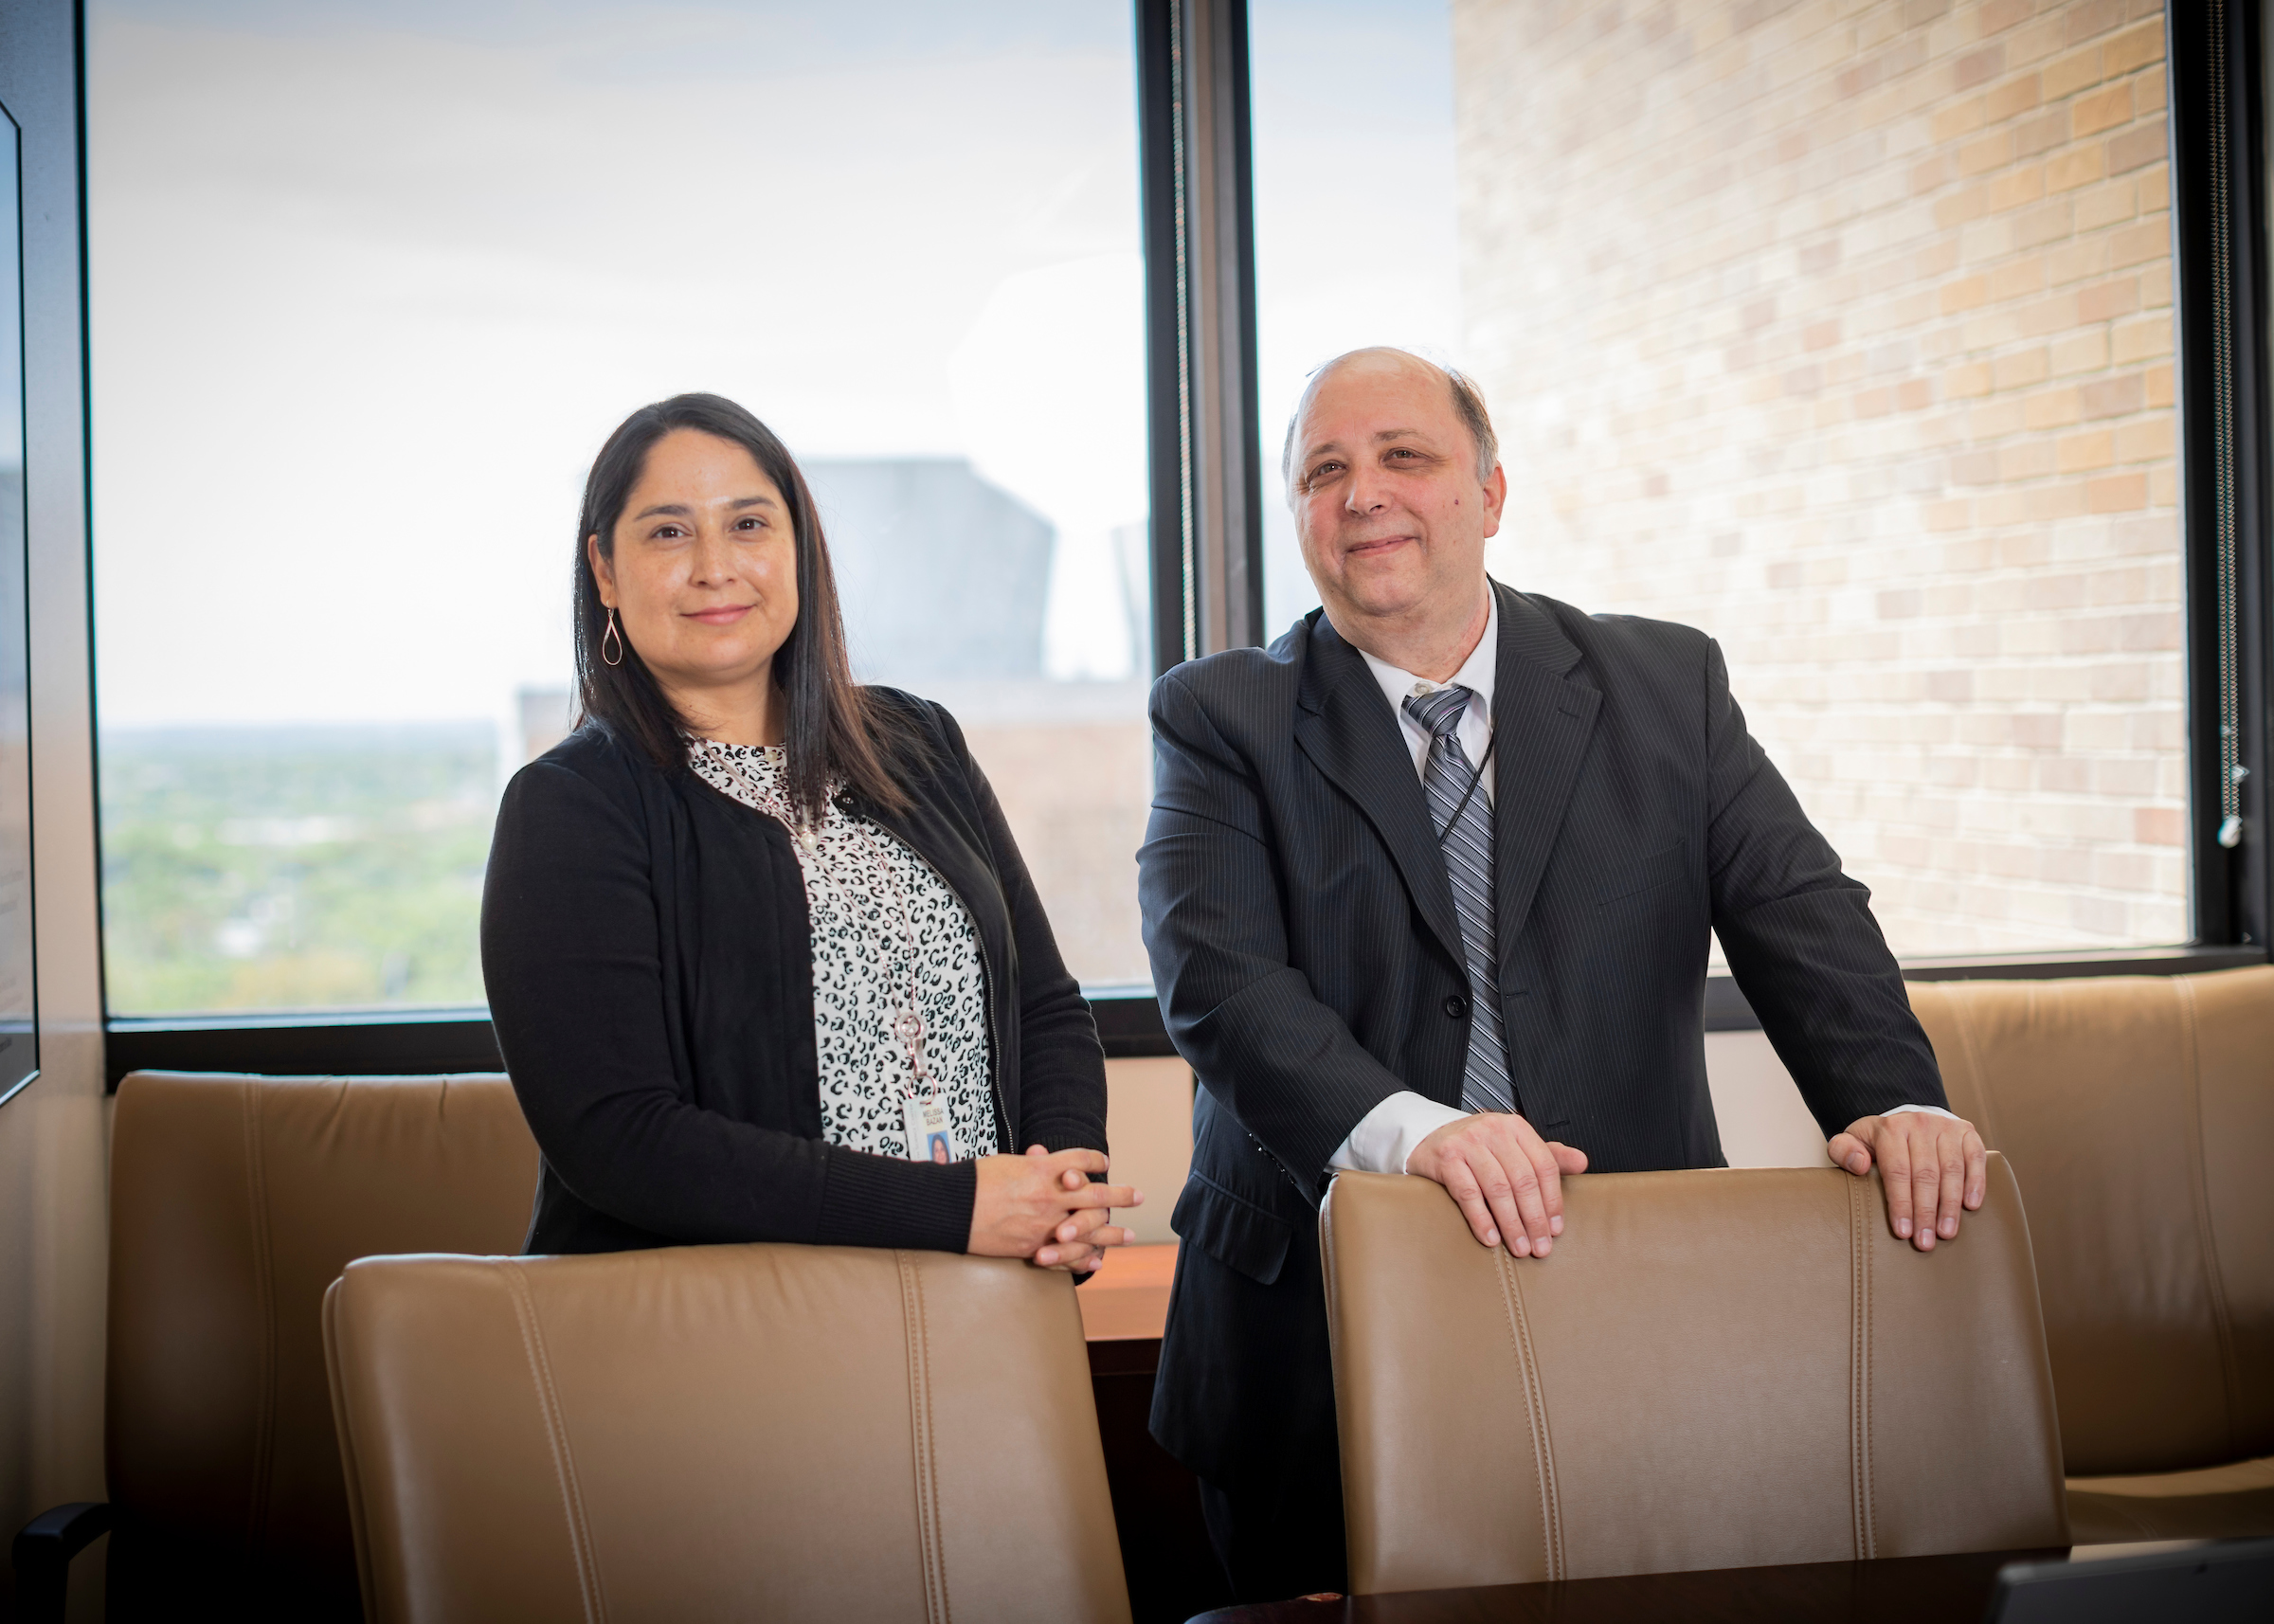 Melissa Bazan, M.A. & David Welch, M.B.A